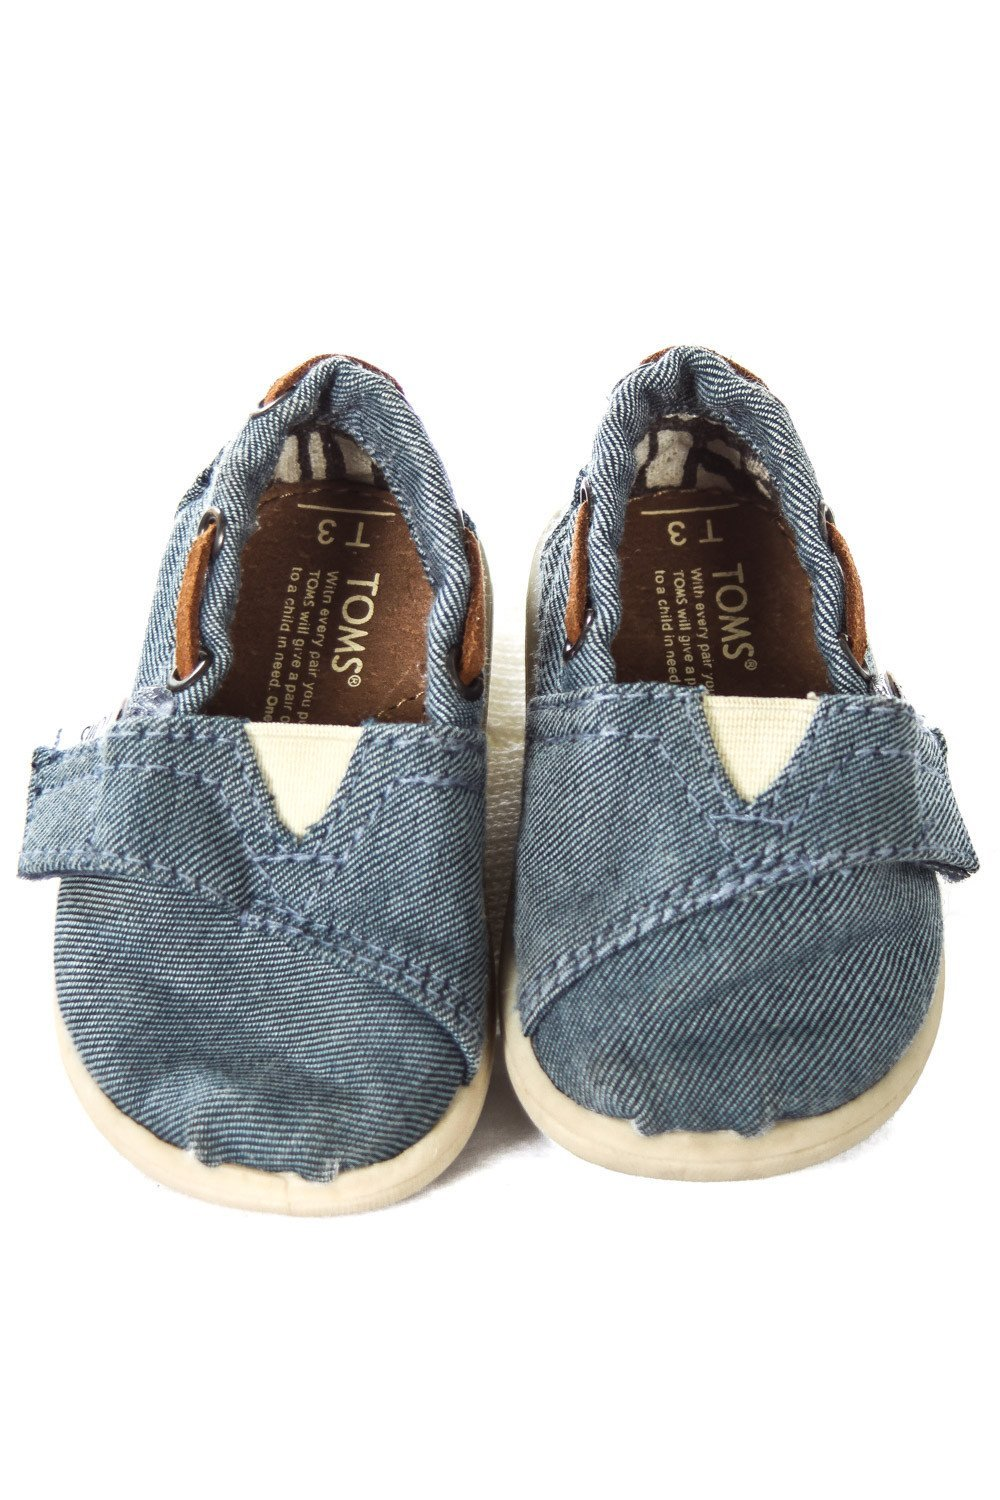 Baby Shoes at Macy's come in a variety of styles and sizes. Shop Baby Shoes at Macy's and find the latest styles for your little one today.